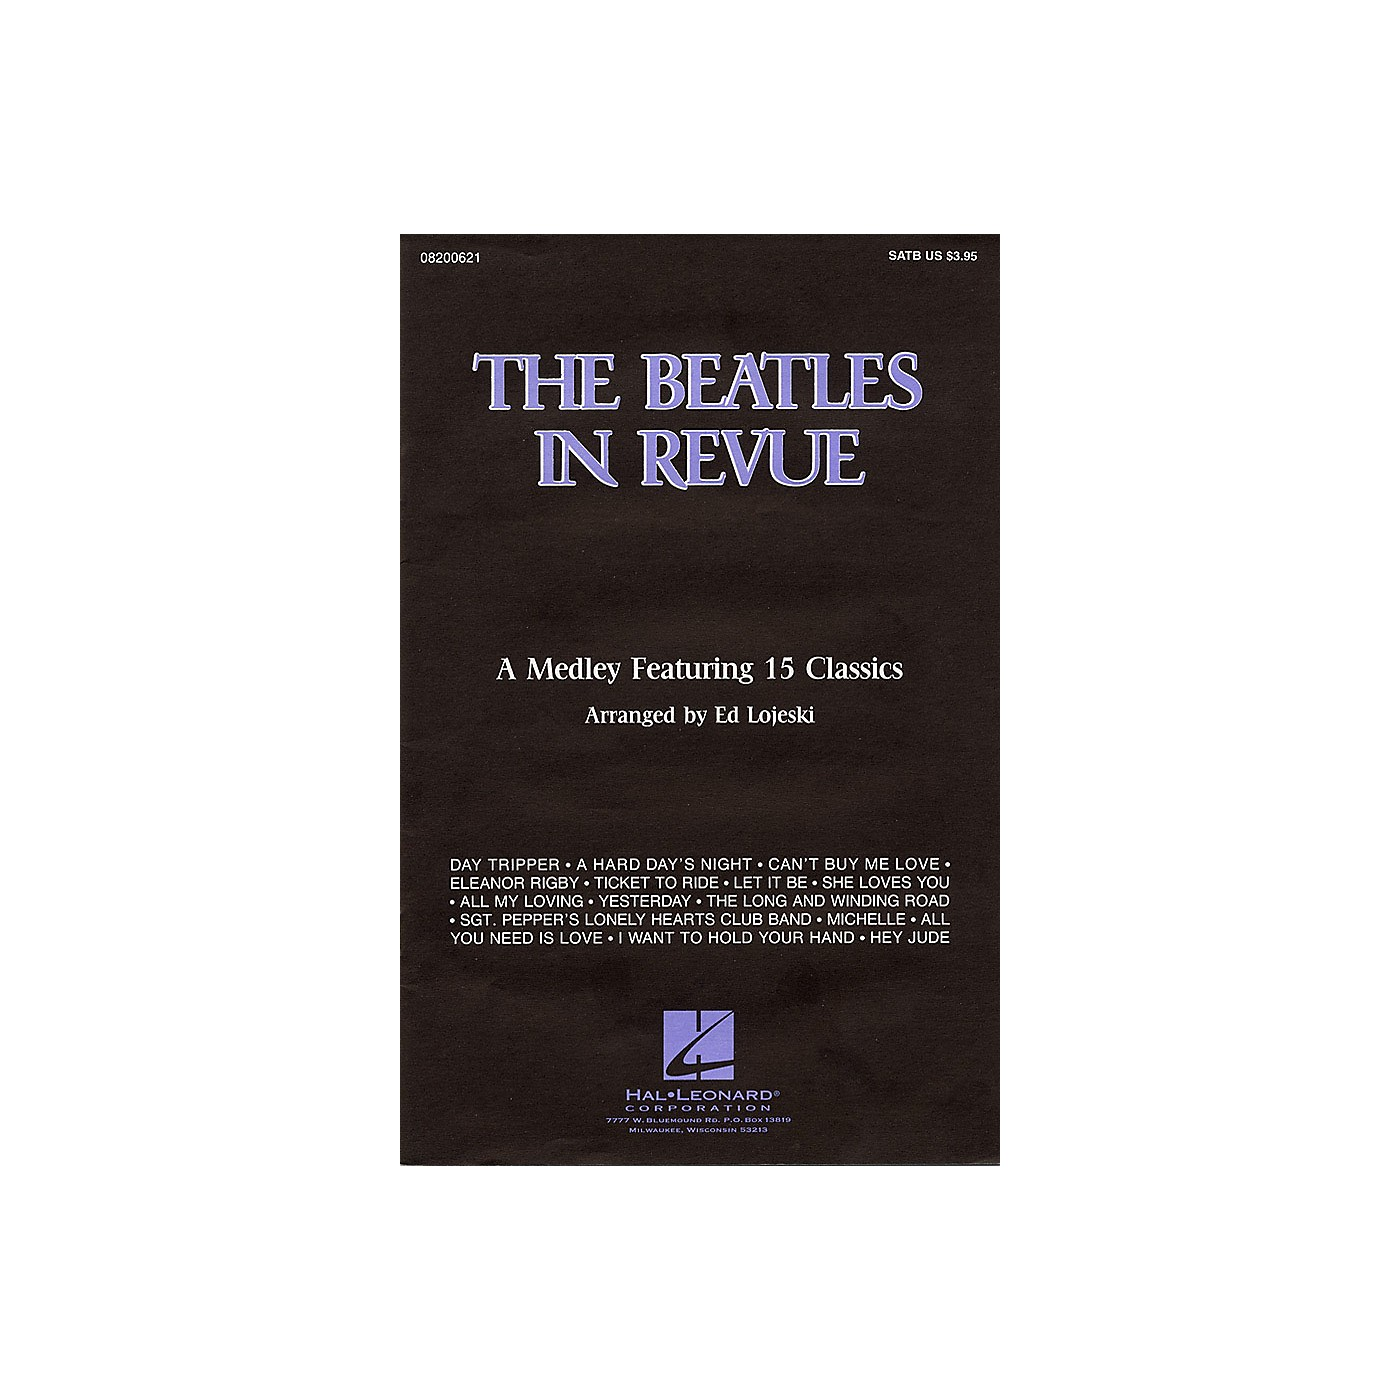 Hal Leonard The Beatles in Revue (Medley of 15 Classics) 2-Part by The Beatles Arranged by Ed Lojeski thumbnail